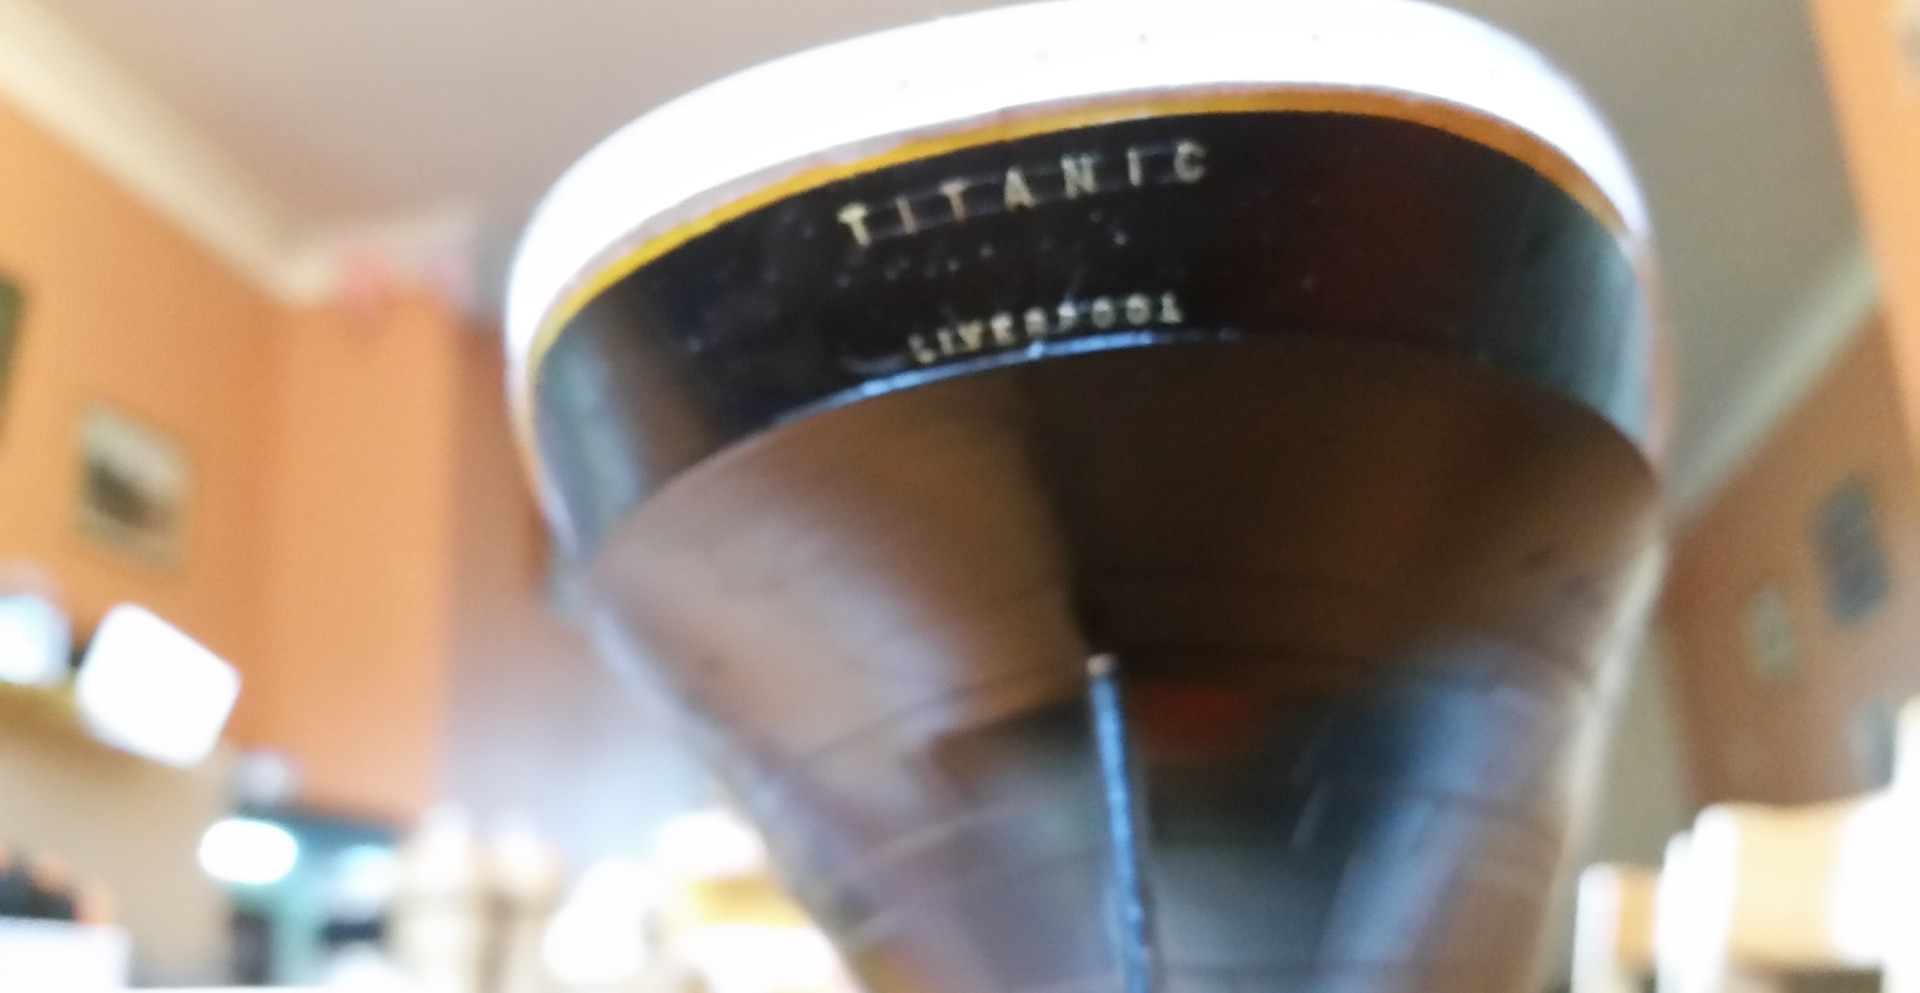 The stern of the Titanic